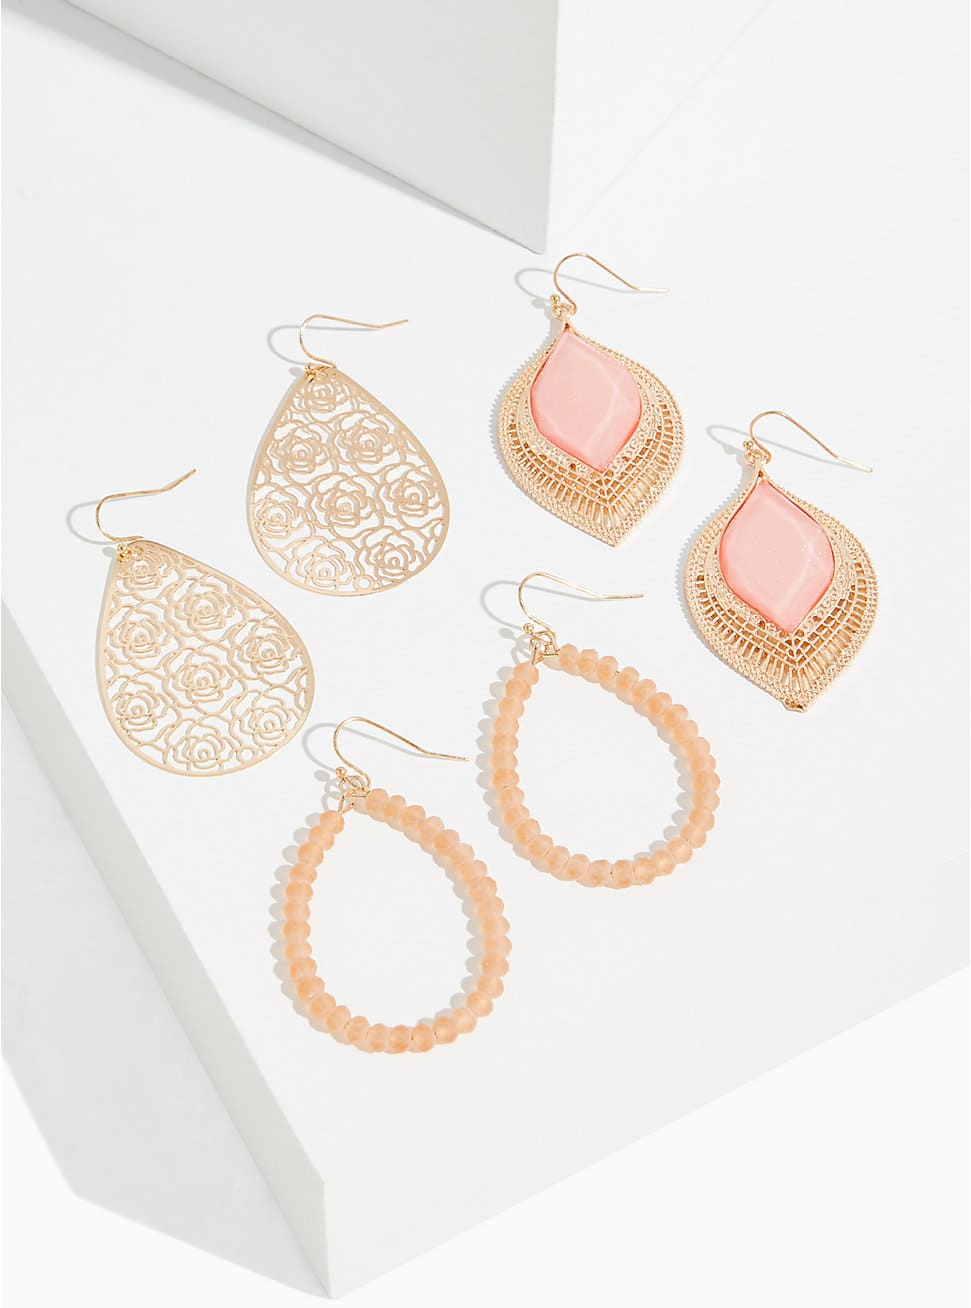 Torrid Extra 50% Off Clearance: 3-Pack Gold Tone Peach Stone Earrings Set $6, Super Soft Taupe Scoop Neck Layering Tank $9.50 & More + Free Shipping